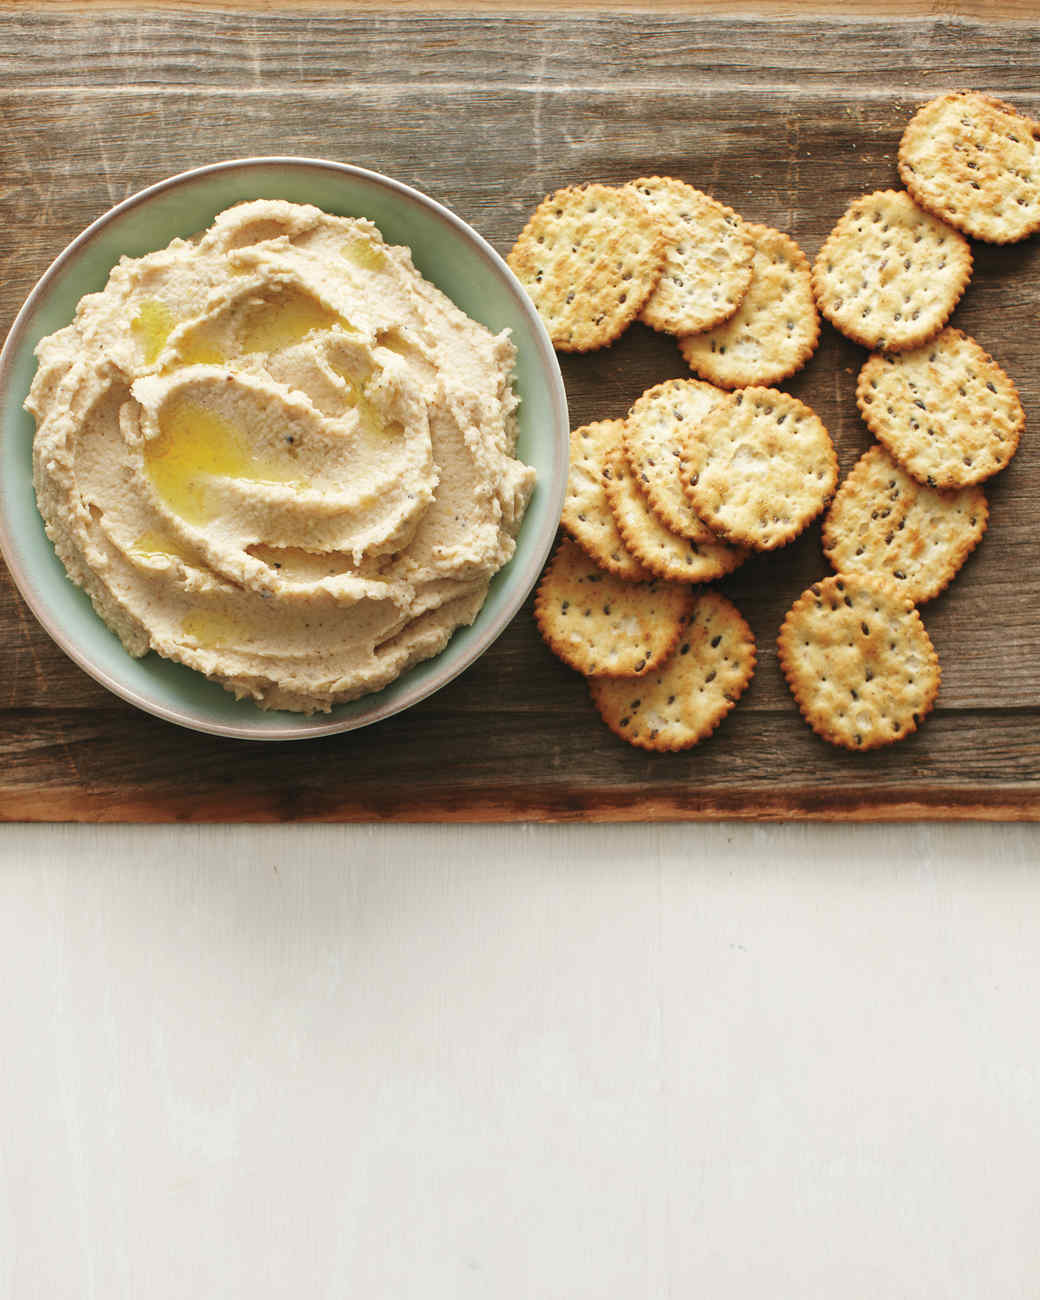 cauliflower-white-bean-dip-med108019.jpg